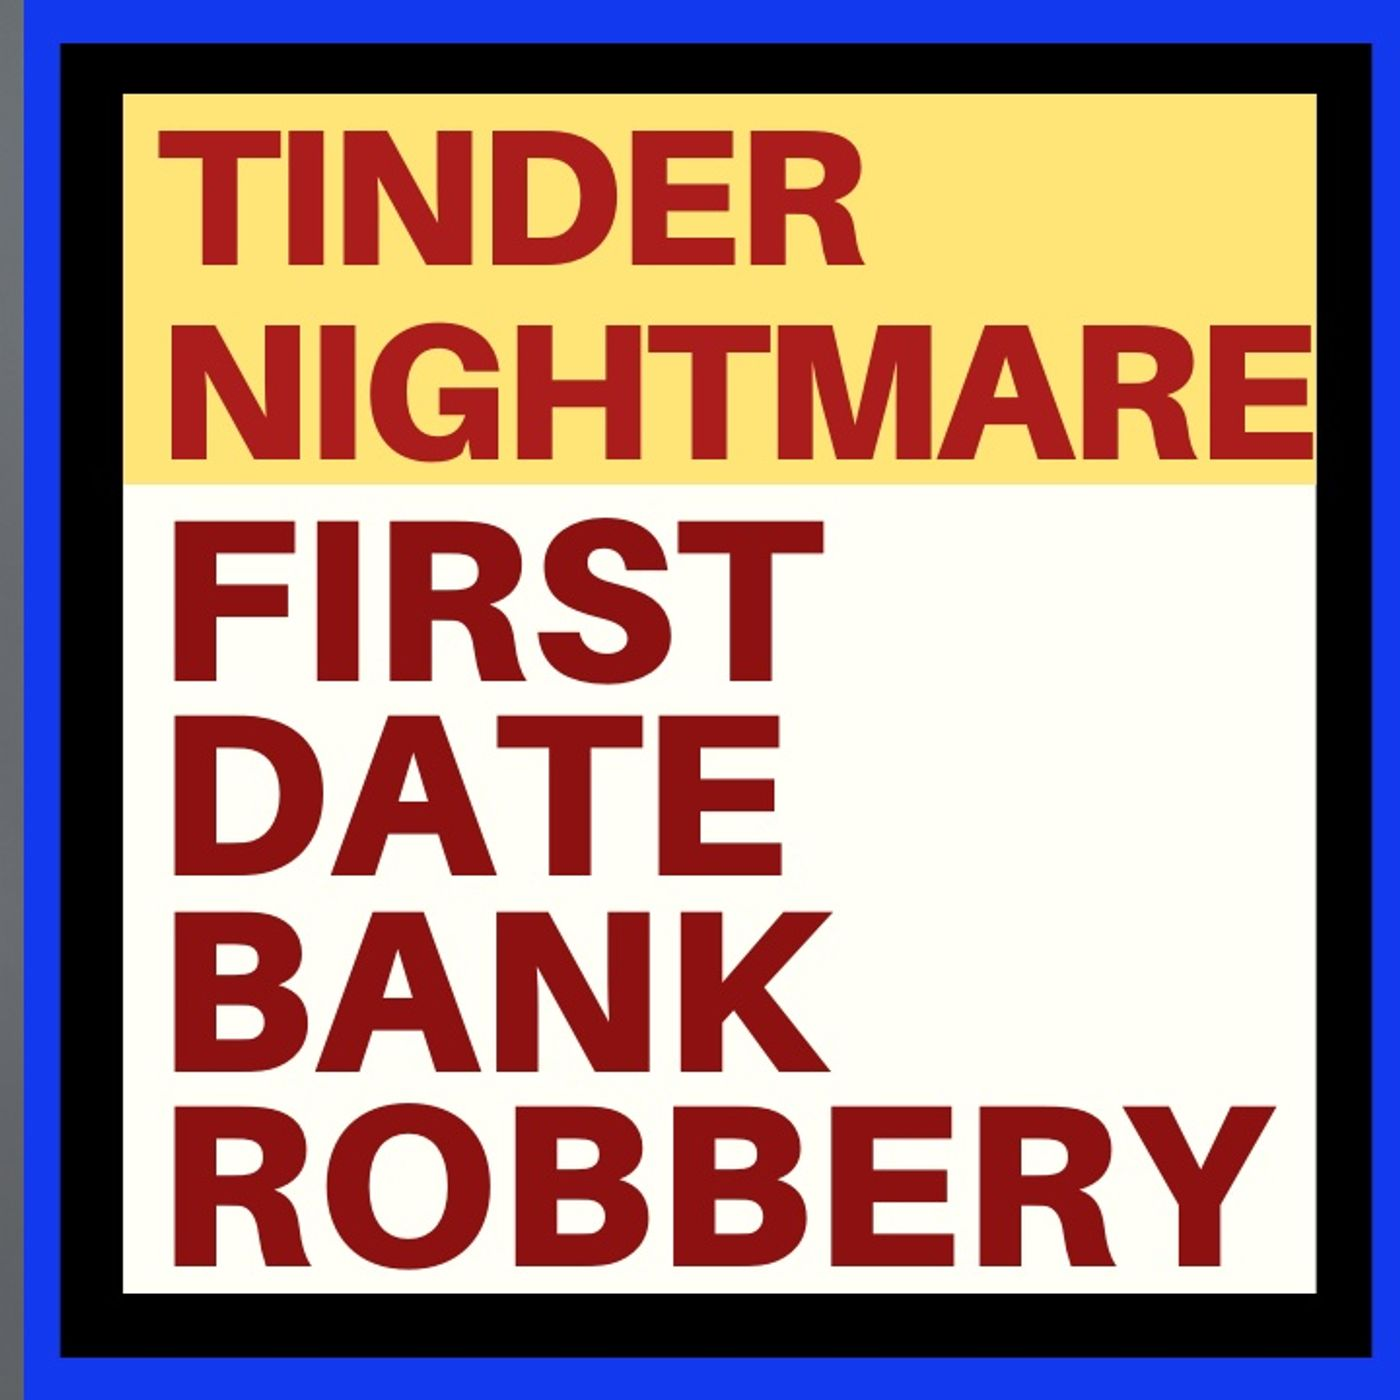 BANK ROBBER TINDER DATES AND THE NEED TO BE SENSIBLE